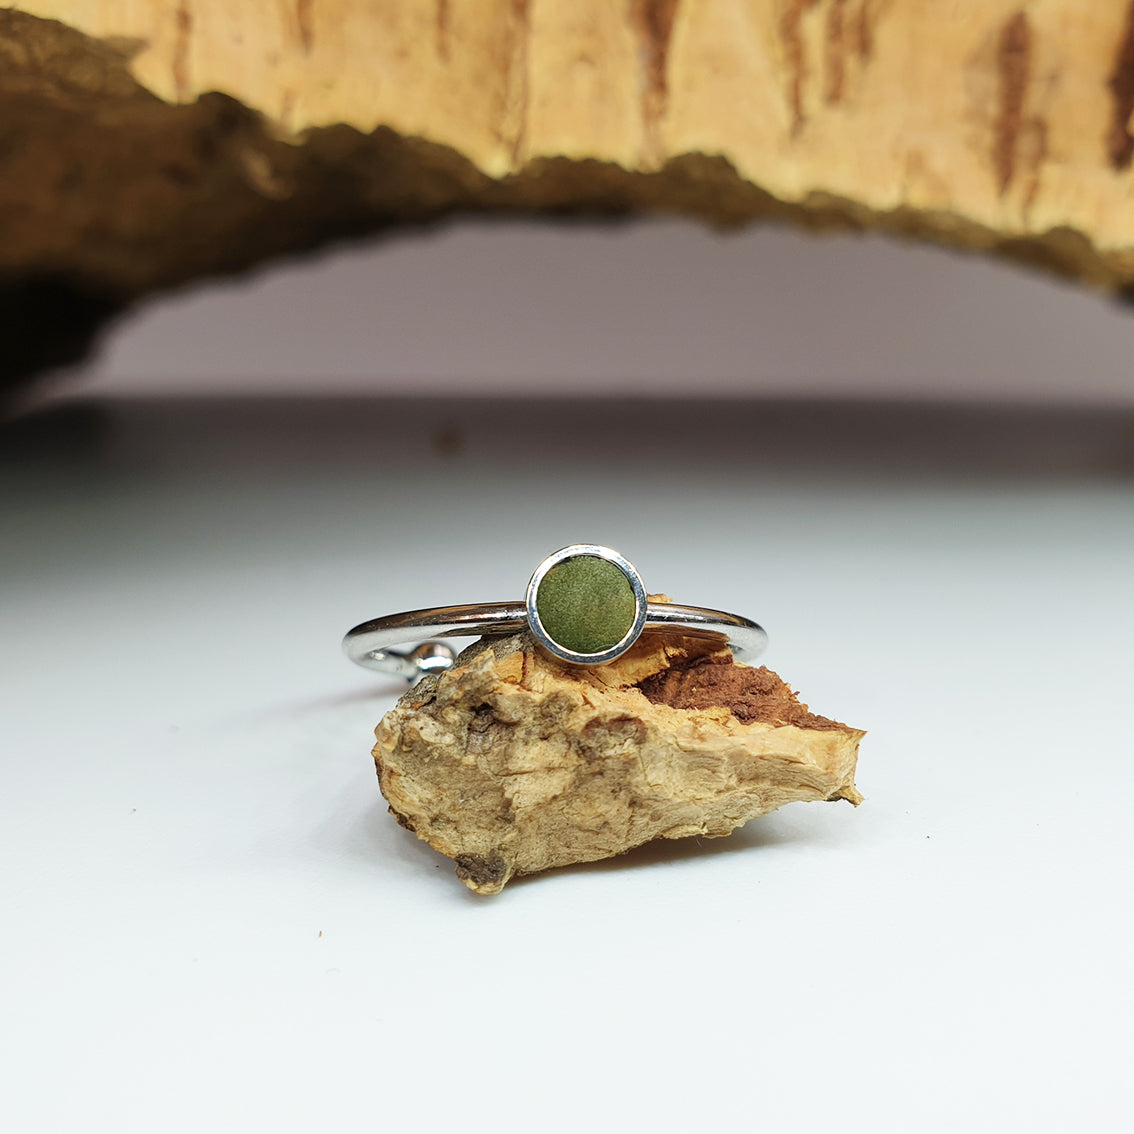 Fabrikk 1 Planet Stacking Ring | Small | Army Green | Vegan Leather